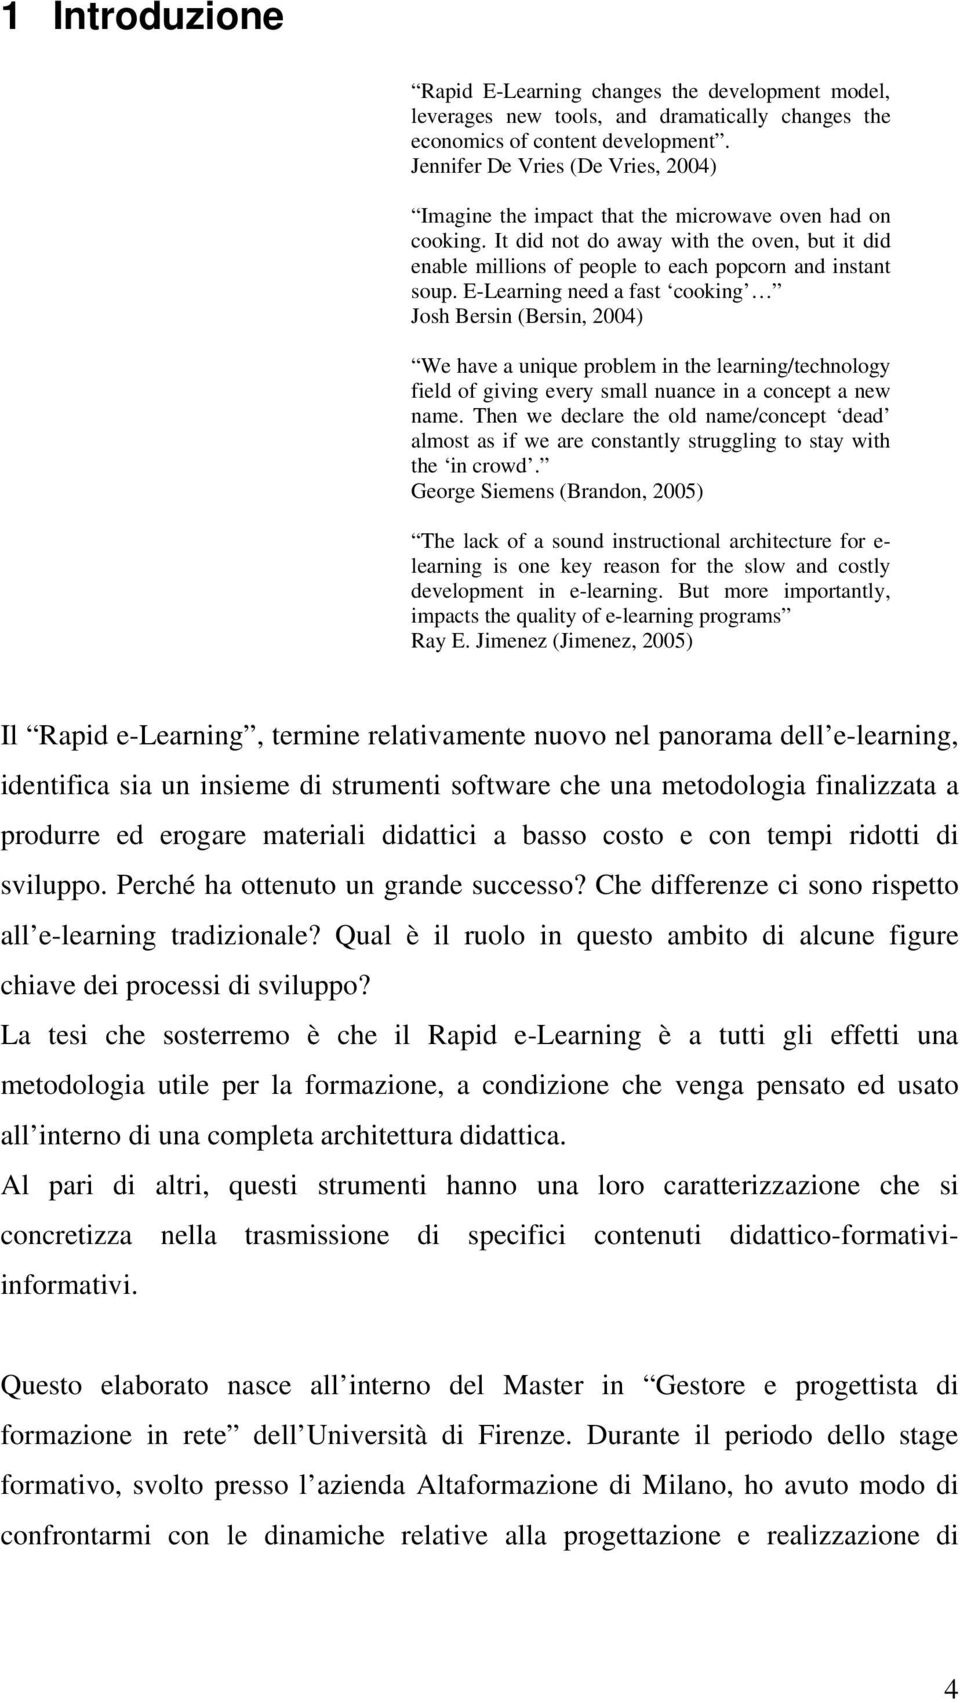 E-Learning need a fast cooking Josh Bersin (Bersin, 2004) We have a unique problem in the learning/technology field of giving every small nuance in a concept a new name.